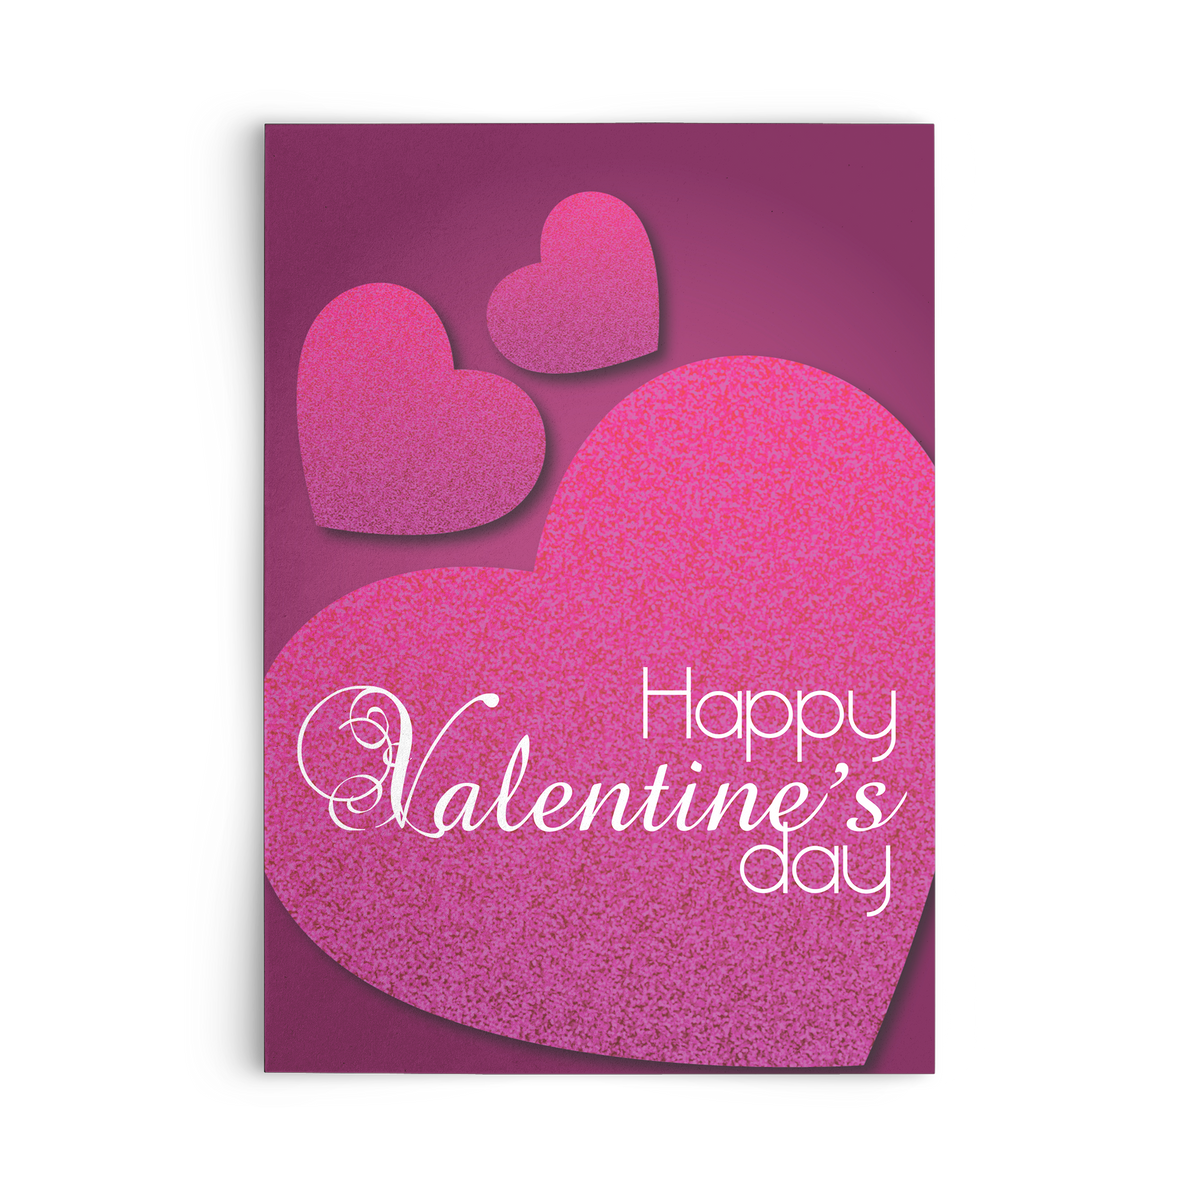 Happy Valentine's day with hearts - Flat Greeting Card (Pack of 10/30/50 pcs)